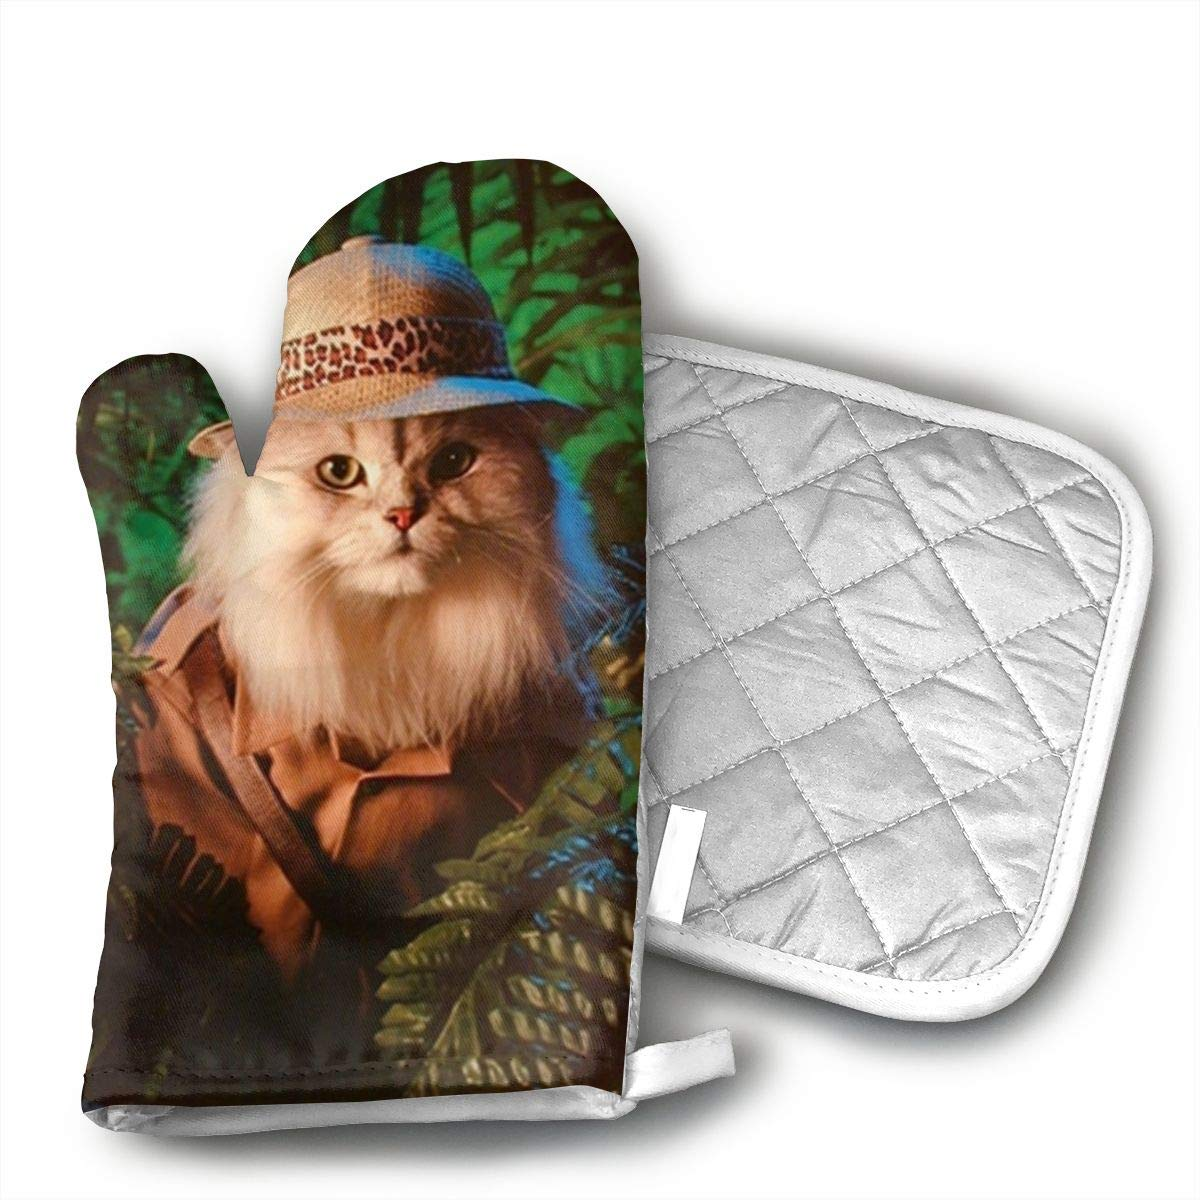 HAIQLK Safari Cat Cute Funny Kittens Animal Art Print Oven Mitts with Quilted Cotton Lining - Heat Resistant Kitchen Gloves, Matching Mini Oven Mitts